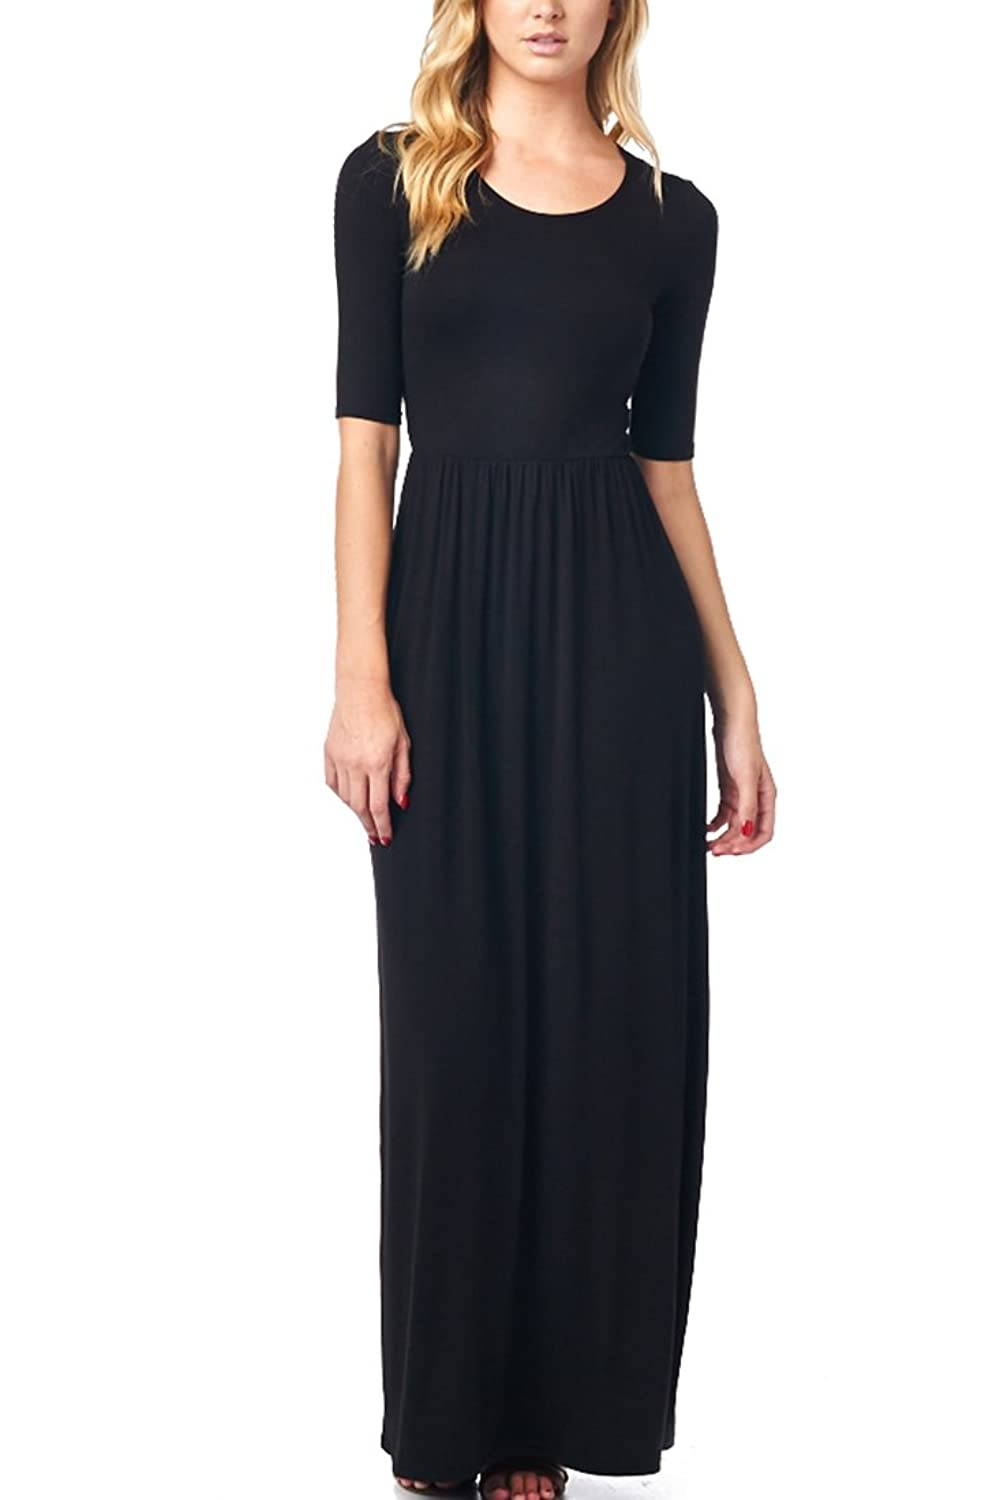 82 Days Women'S Rayon Span Jersey Maxi Long Dress with Elastic Waistband - Solid & Prints